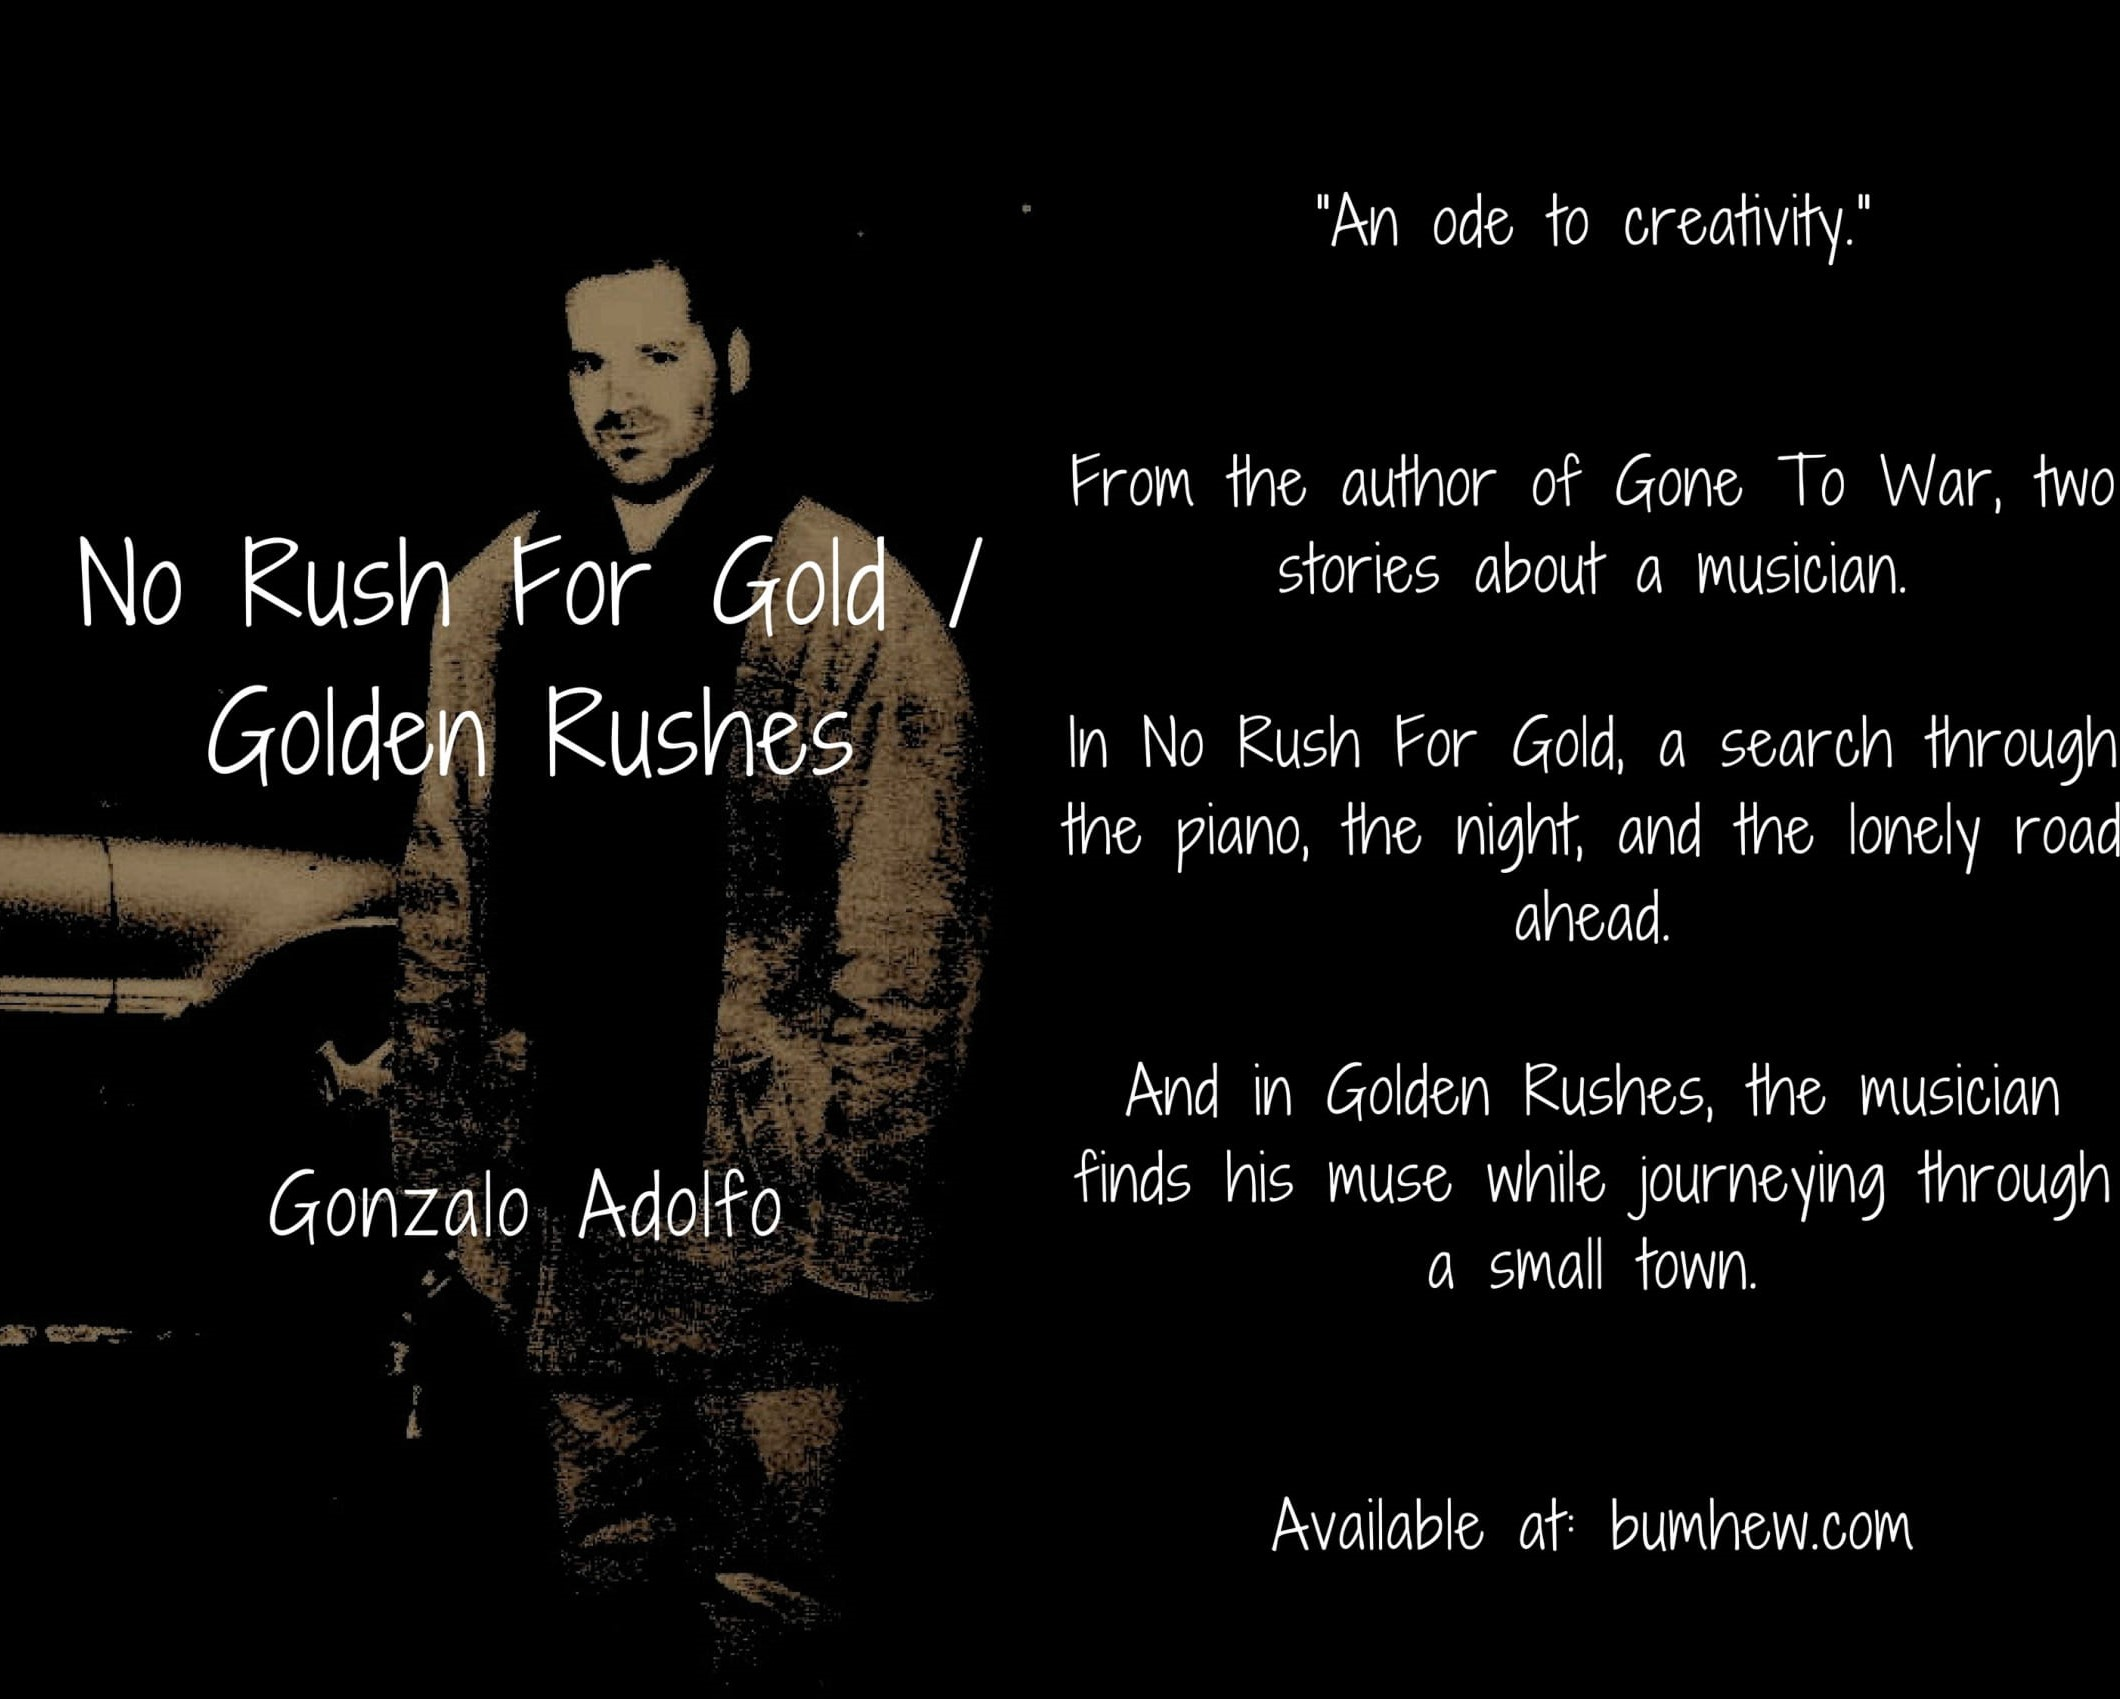 No Rush For Gold / Golden Rushes. Published by Detached Books in January 2017. Click on image to purchase.